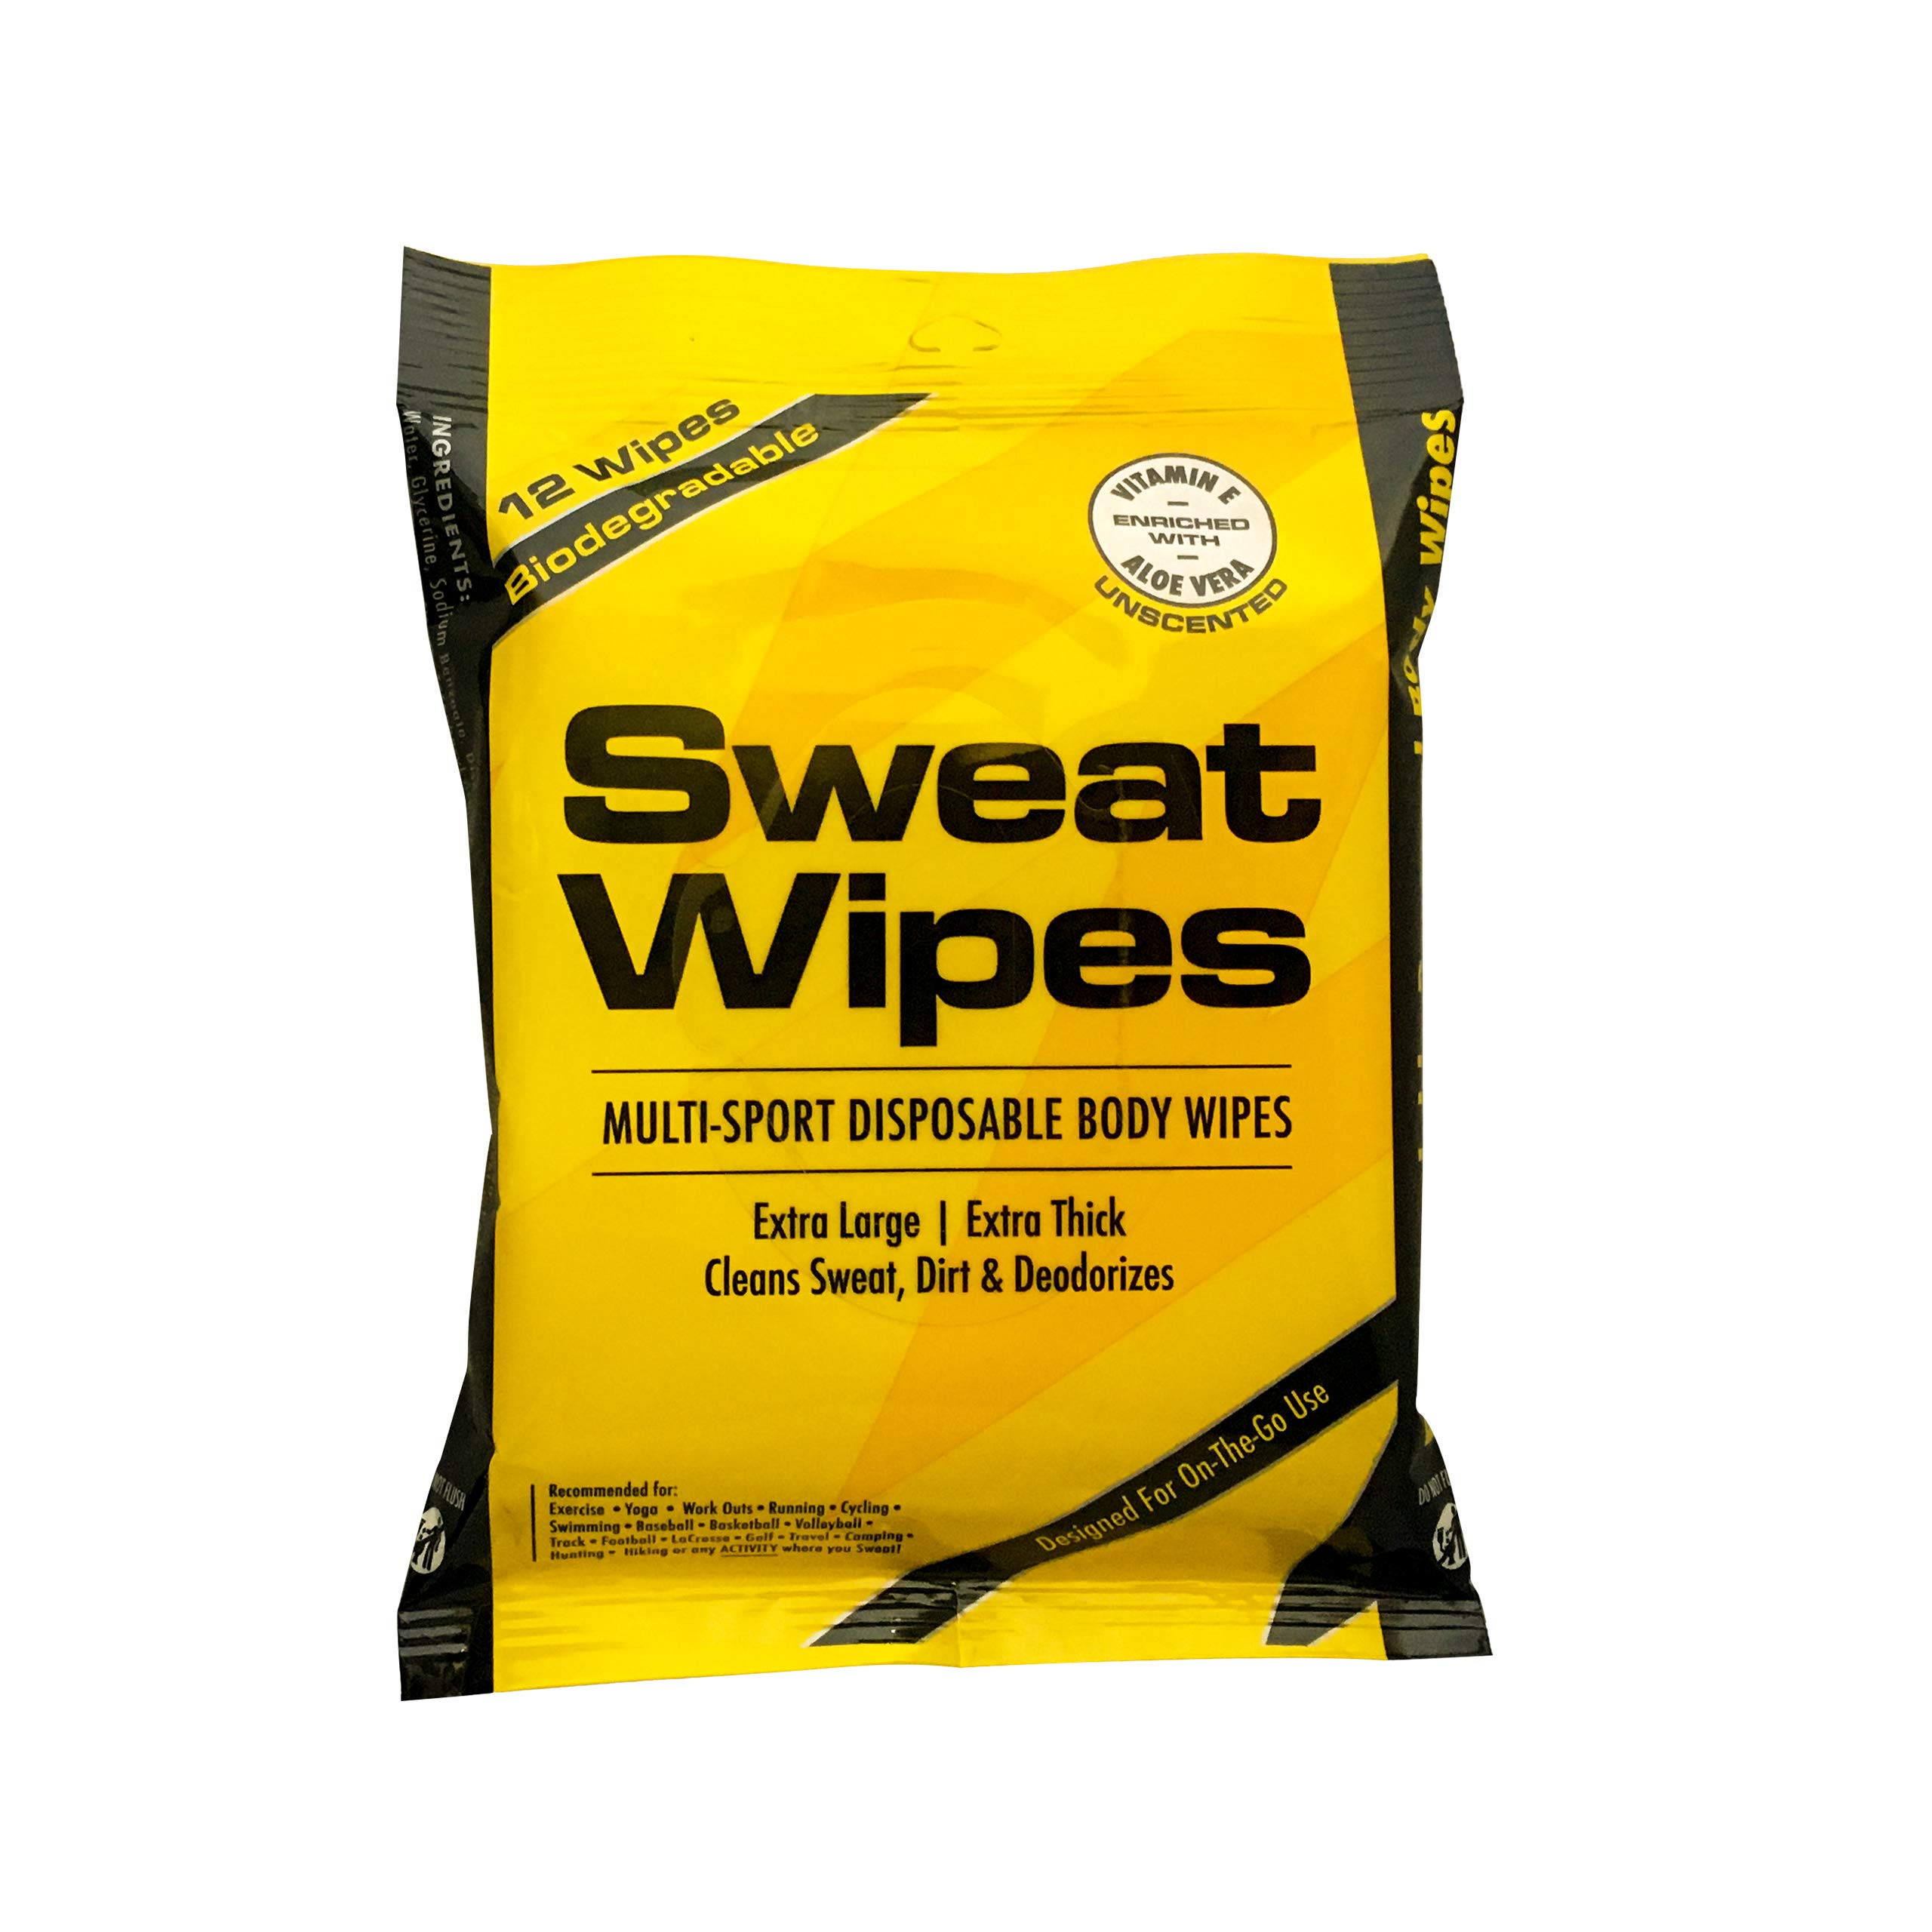 Body Wipes to Clean Sweat, Dirt, & Deodorize - 12 XL Package Travel Wipes For Rinse Free Shower